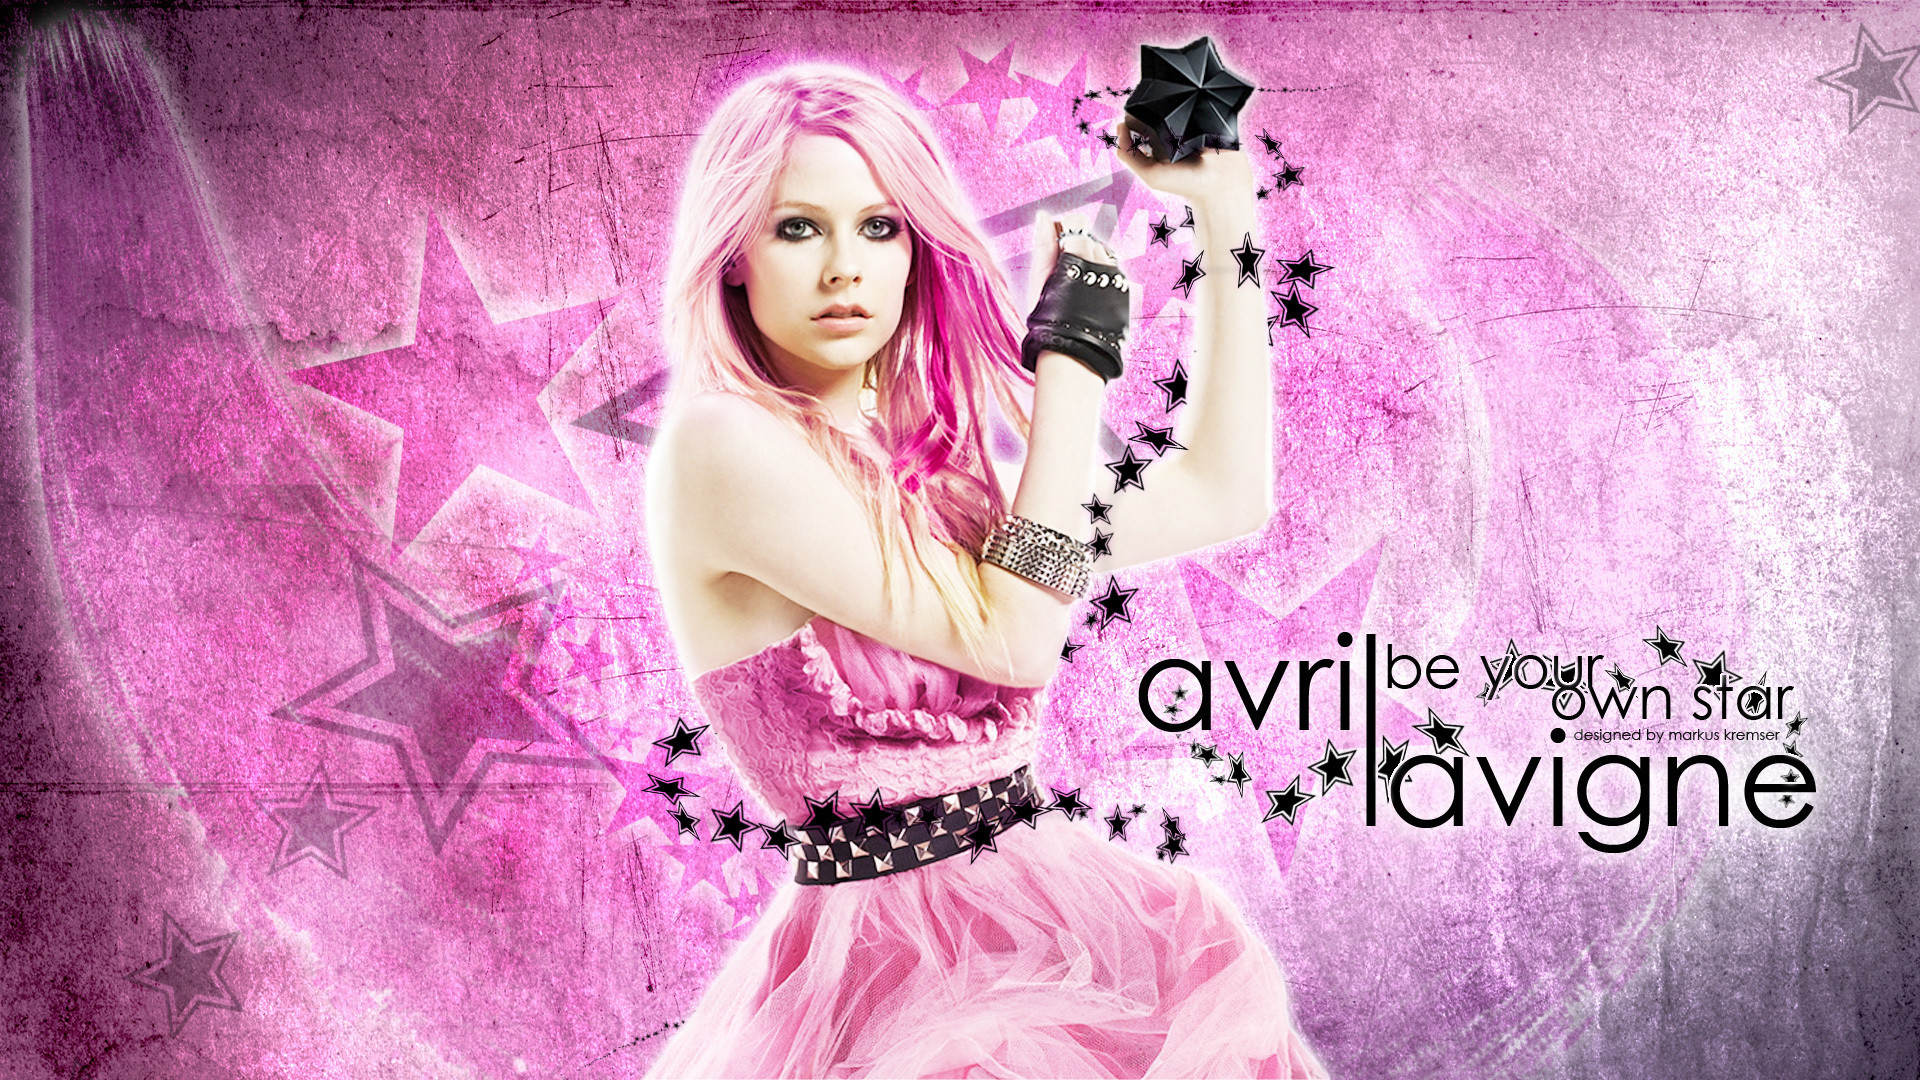 Res: 1920x1080, Black Star images AvriLL ( BLack staR ) HD wallpaper and background photos